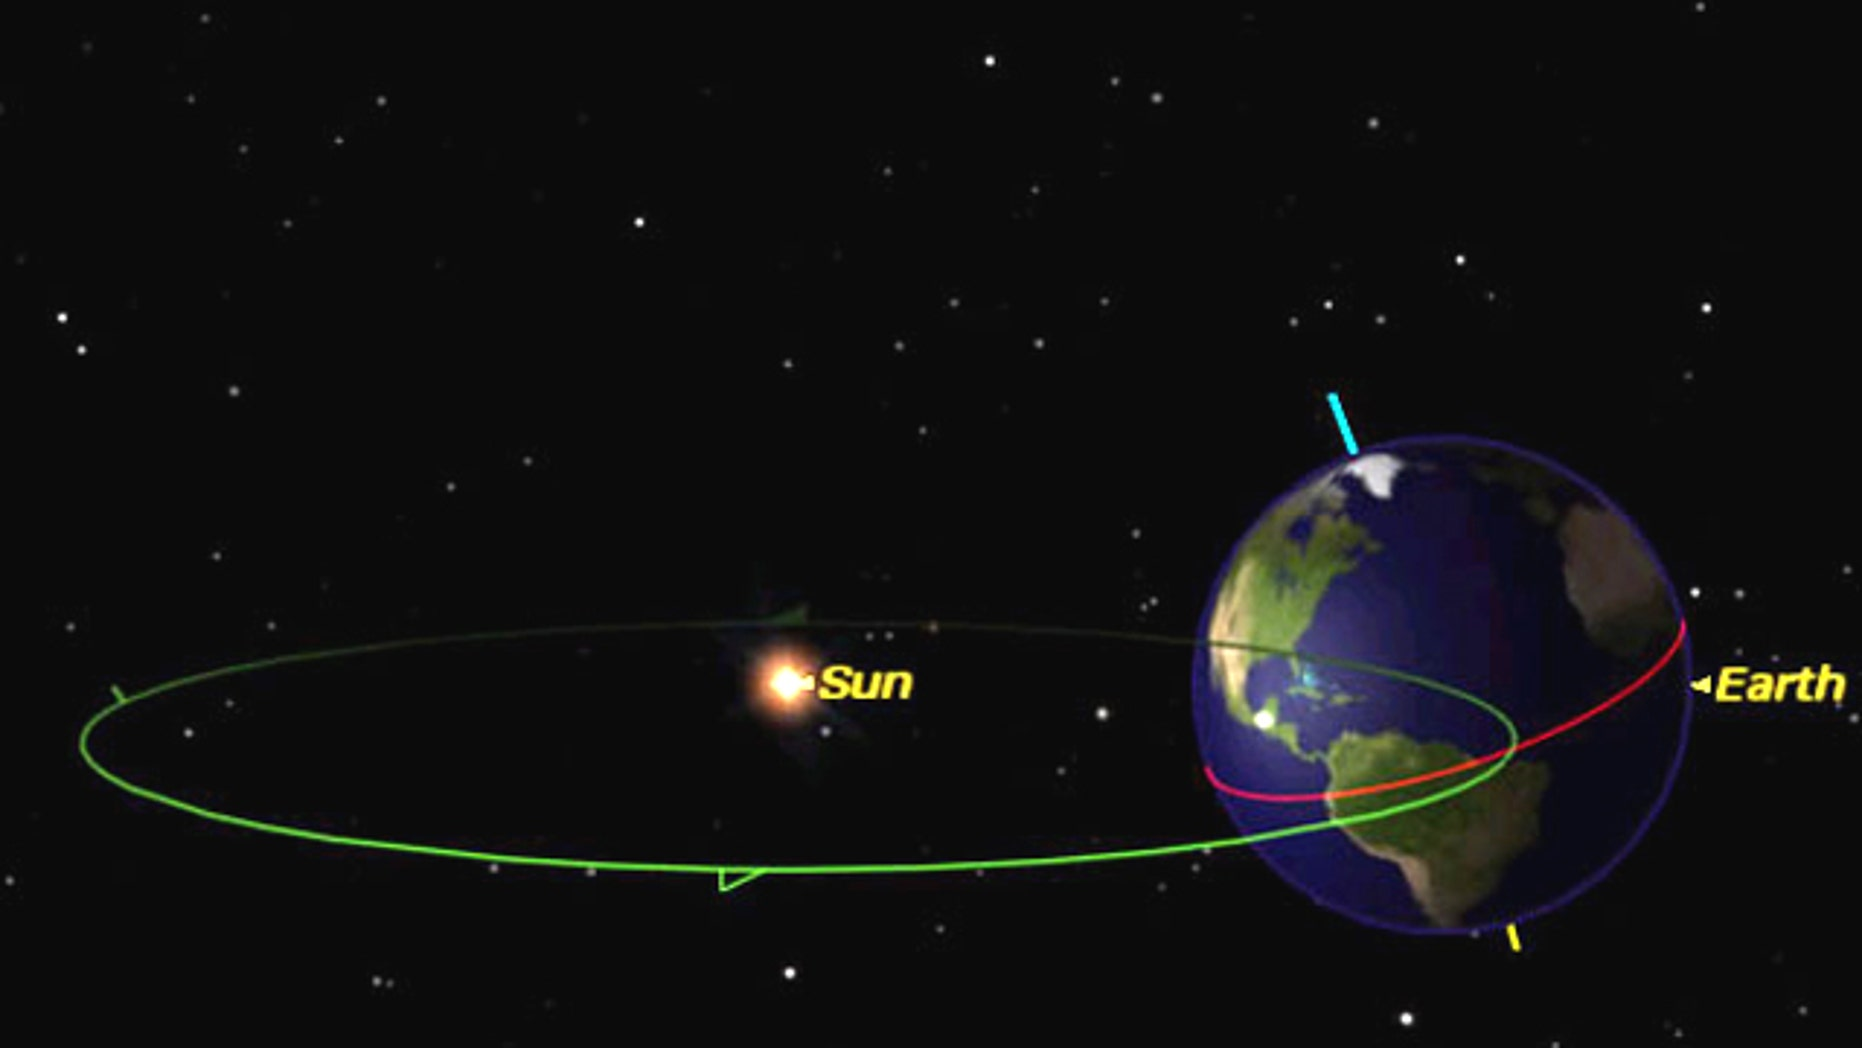 The seasons are caused by Earth's tilt. In the Northern Hemisphere it is summer when the Northern Hemisphere is tilted towards the sun.